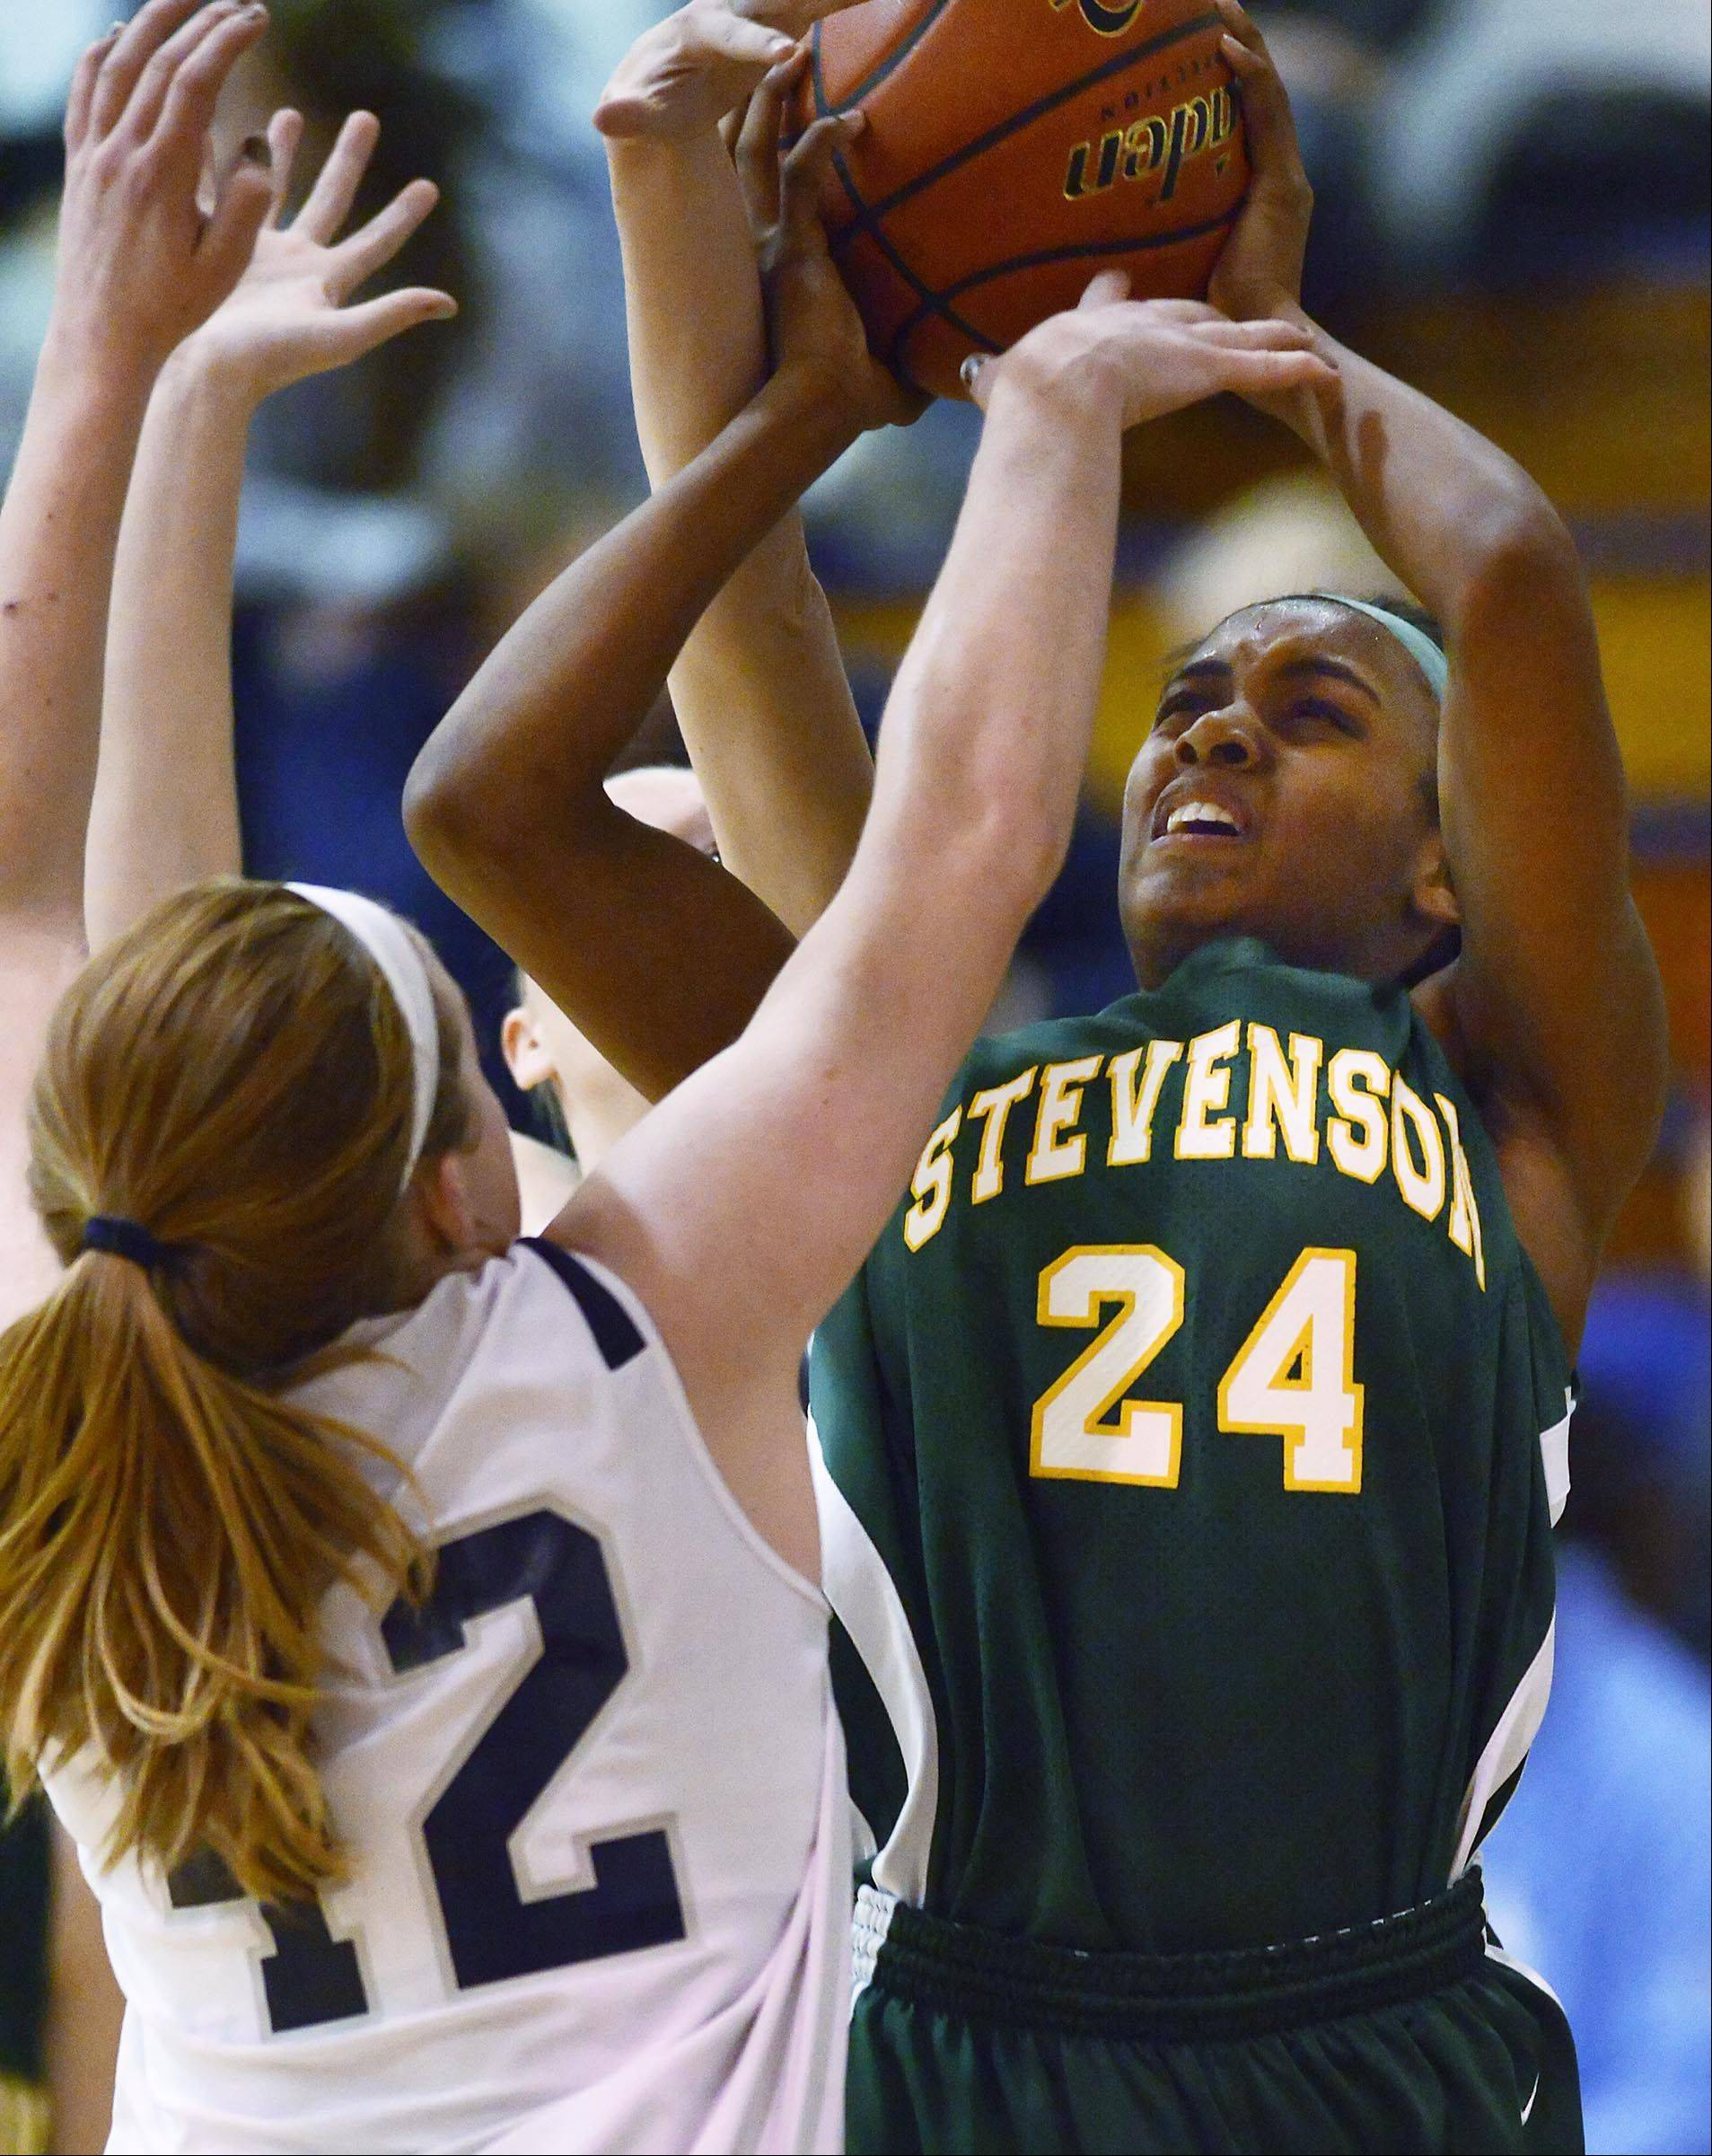 Cary-Grove's Olivia Jakubicek and Morgan Lee defend against Stevenson's Taylor Buford Wednesday in Cary.